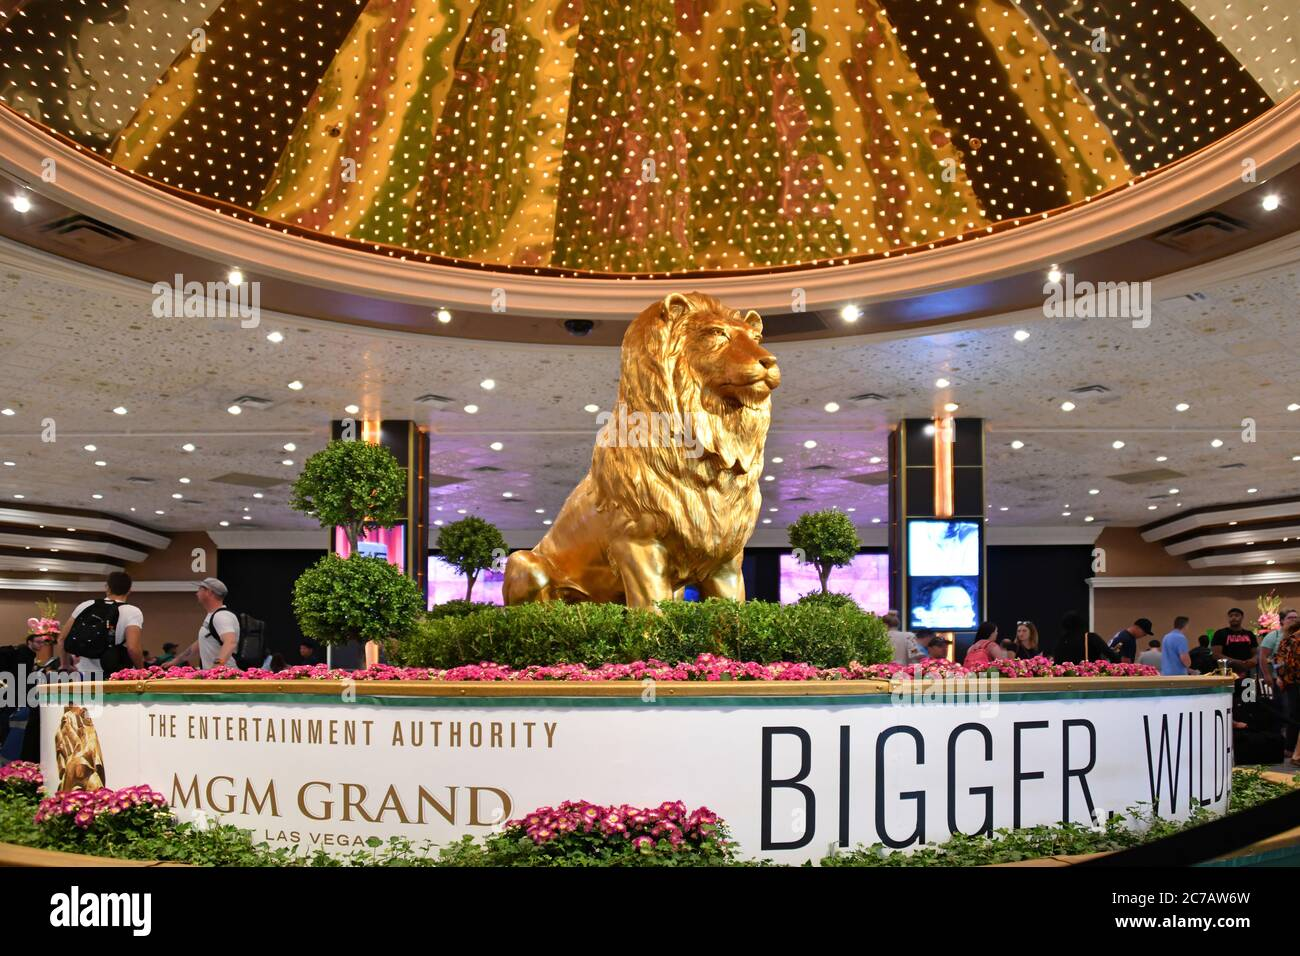 """Las Vegas, NV, USA - January 10th, 2018: A small bronze replica of the MGM """"Grand Lion"""". It is located in the hotel lobby. Stock Photo"""